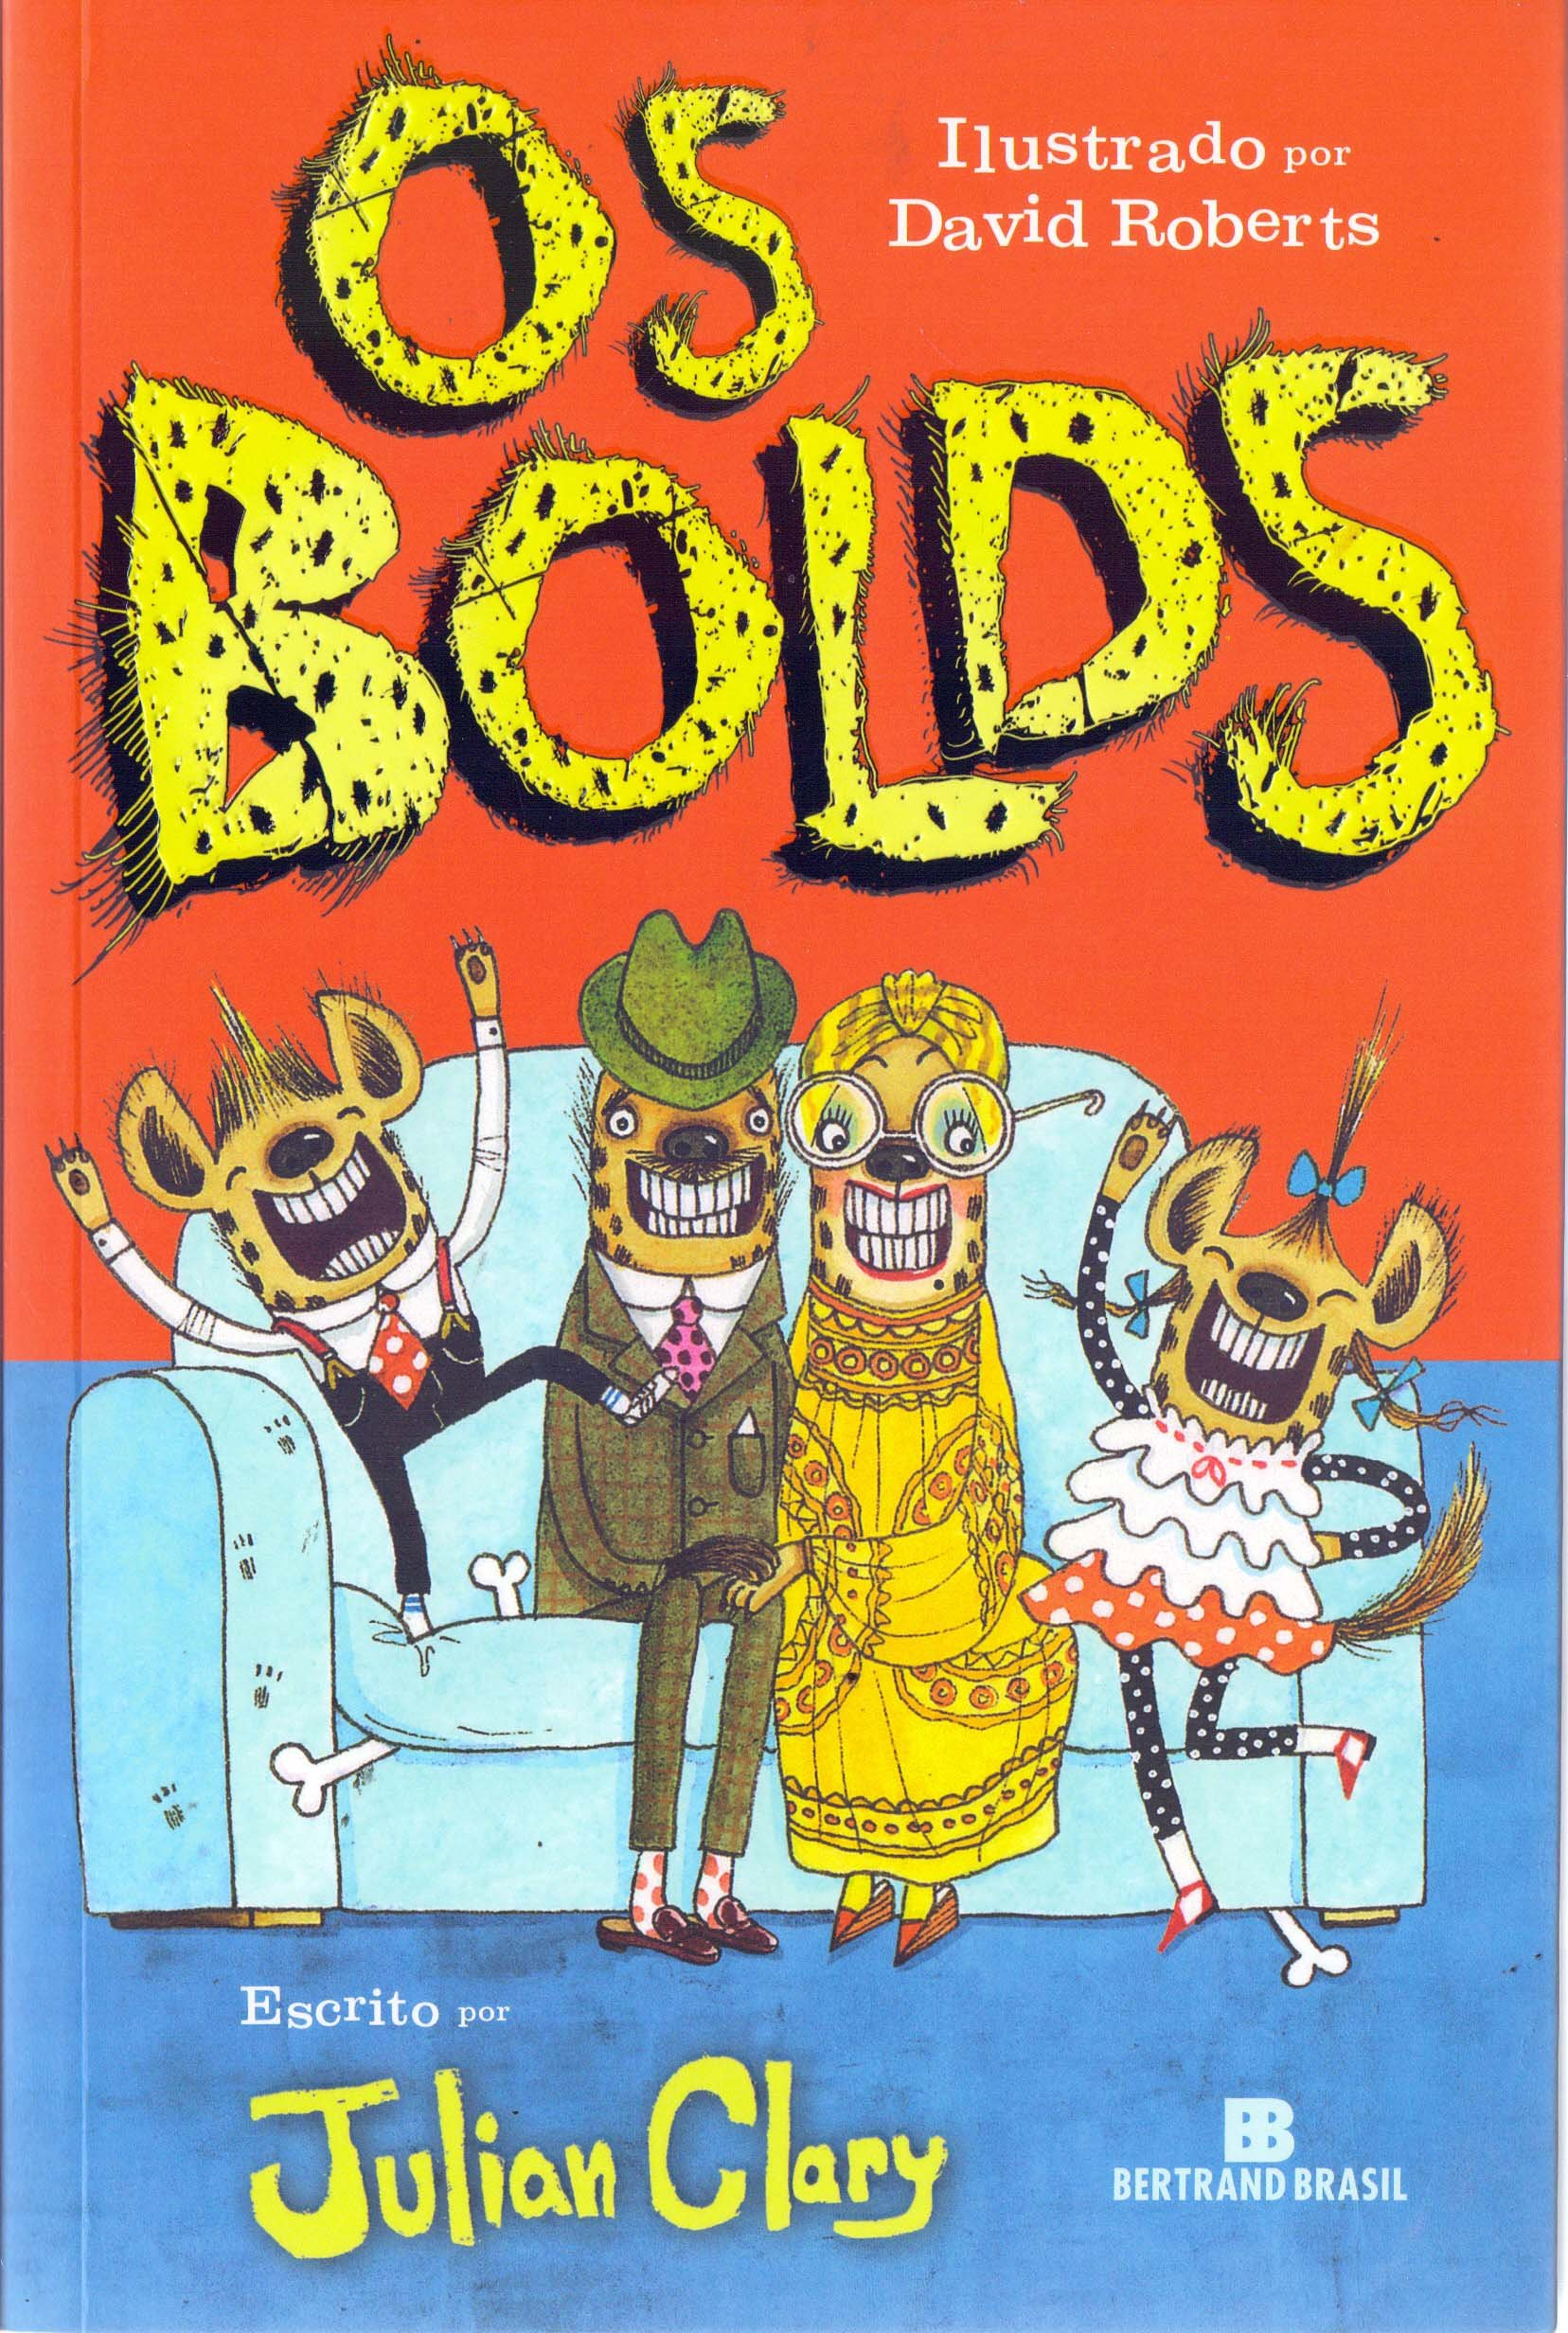 Os Bolds (Em Portugues do Brasil): Julian Clary e David Roberts: 9788528622294: Amazon.com: Books